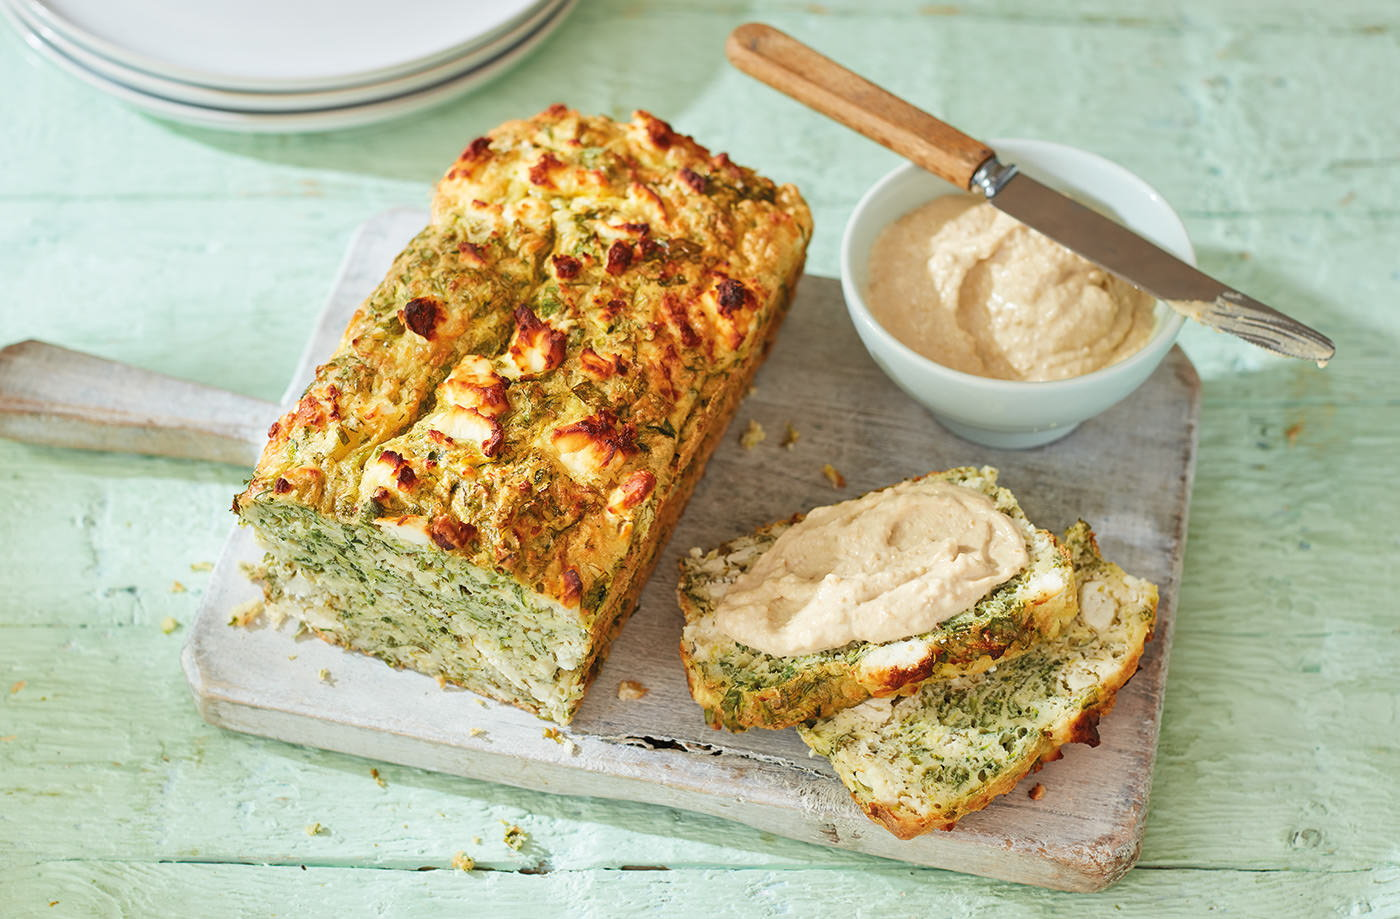 Gluten-free courgette and feta bread  recipe